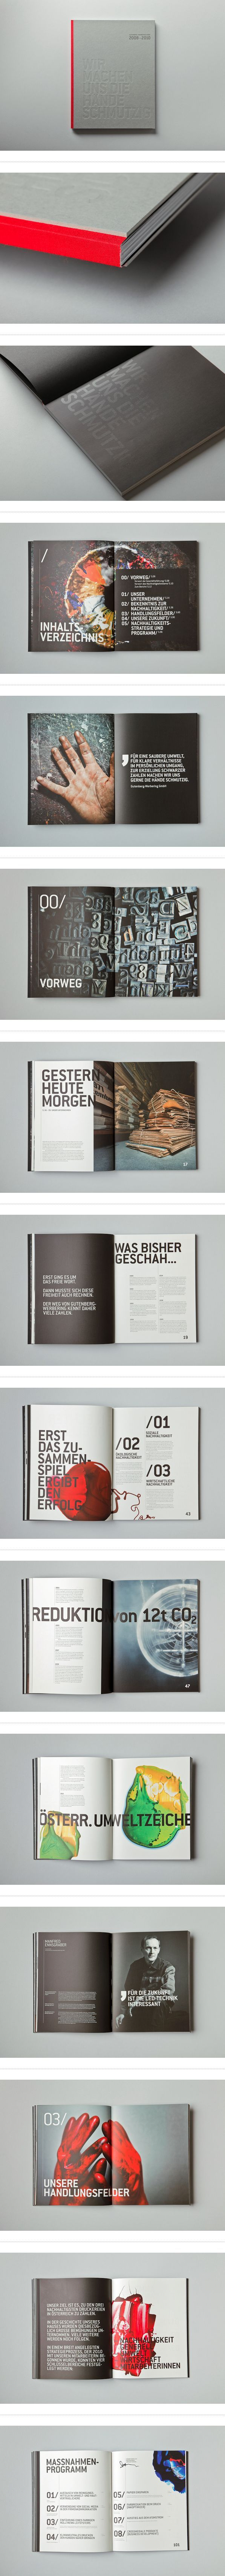 SUSTAINABILITY REPORT by Julian Weidenthaler #editoriallayout